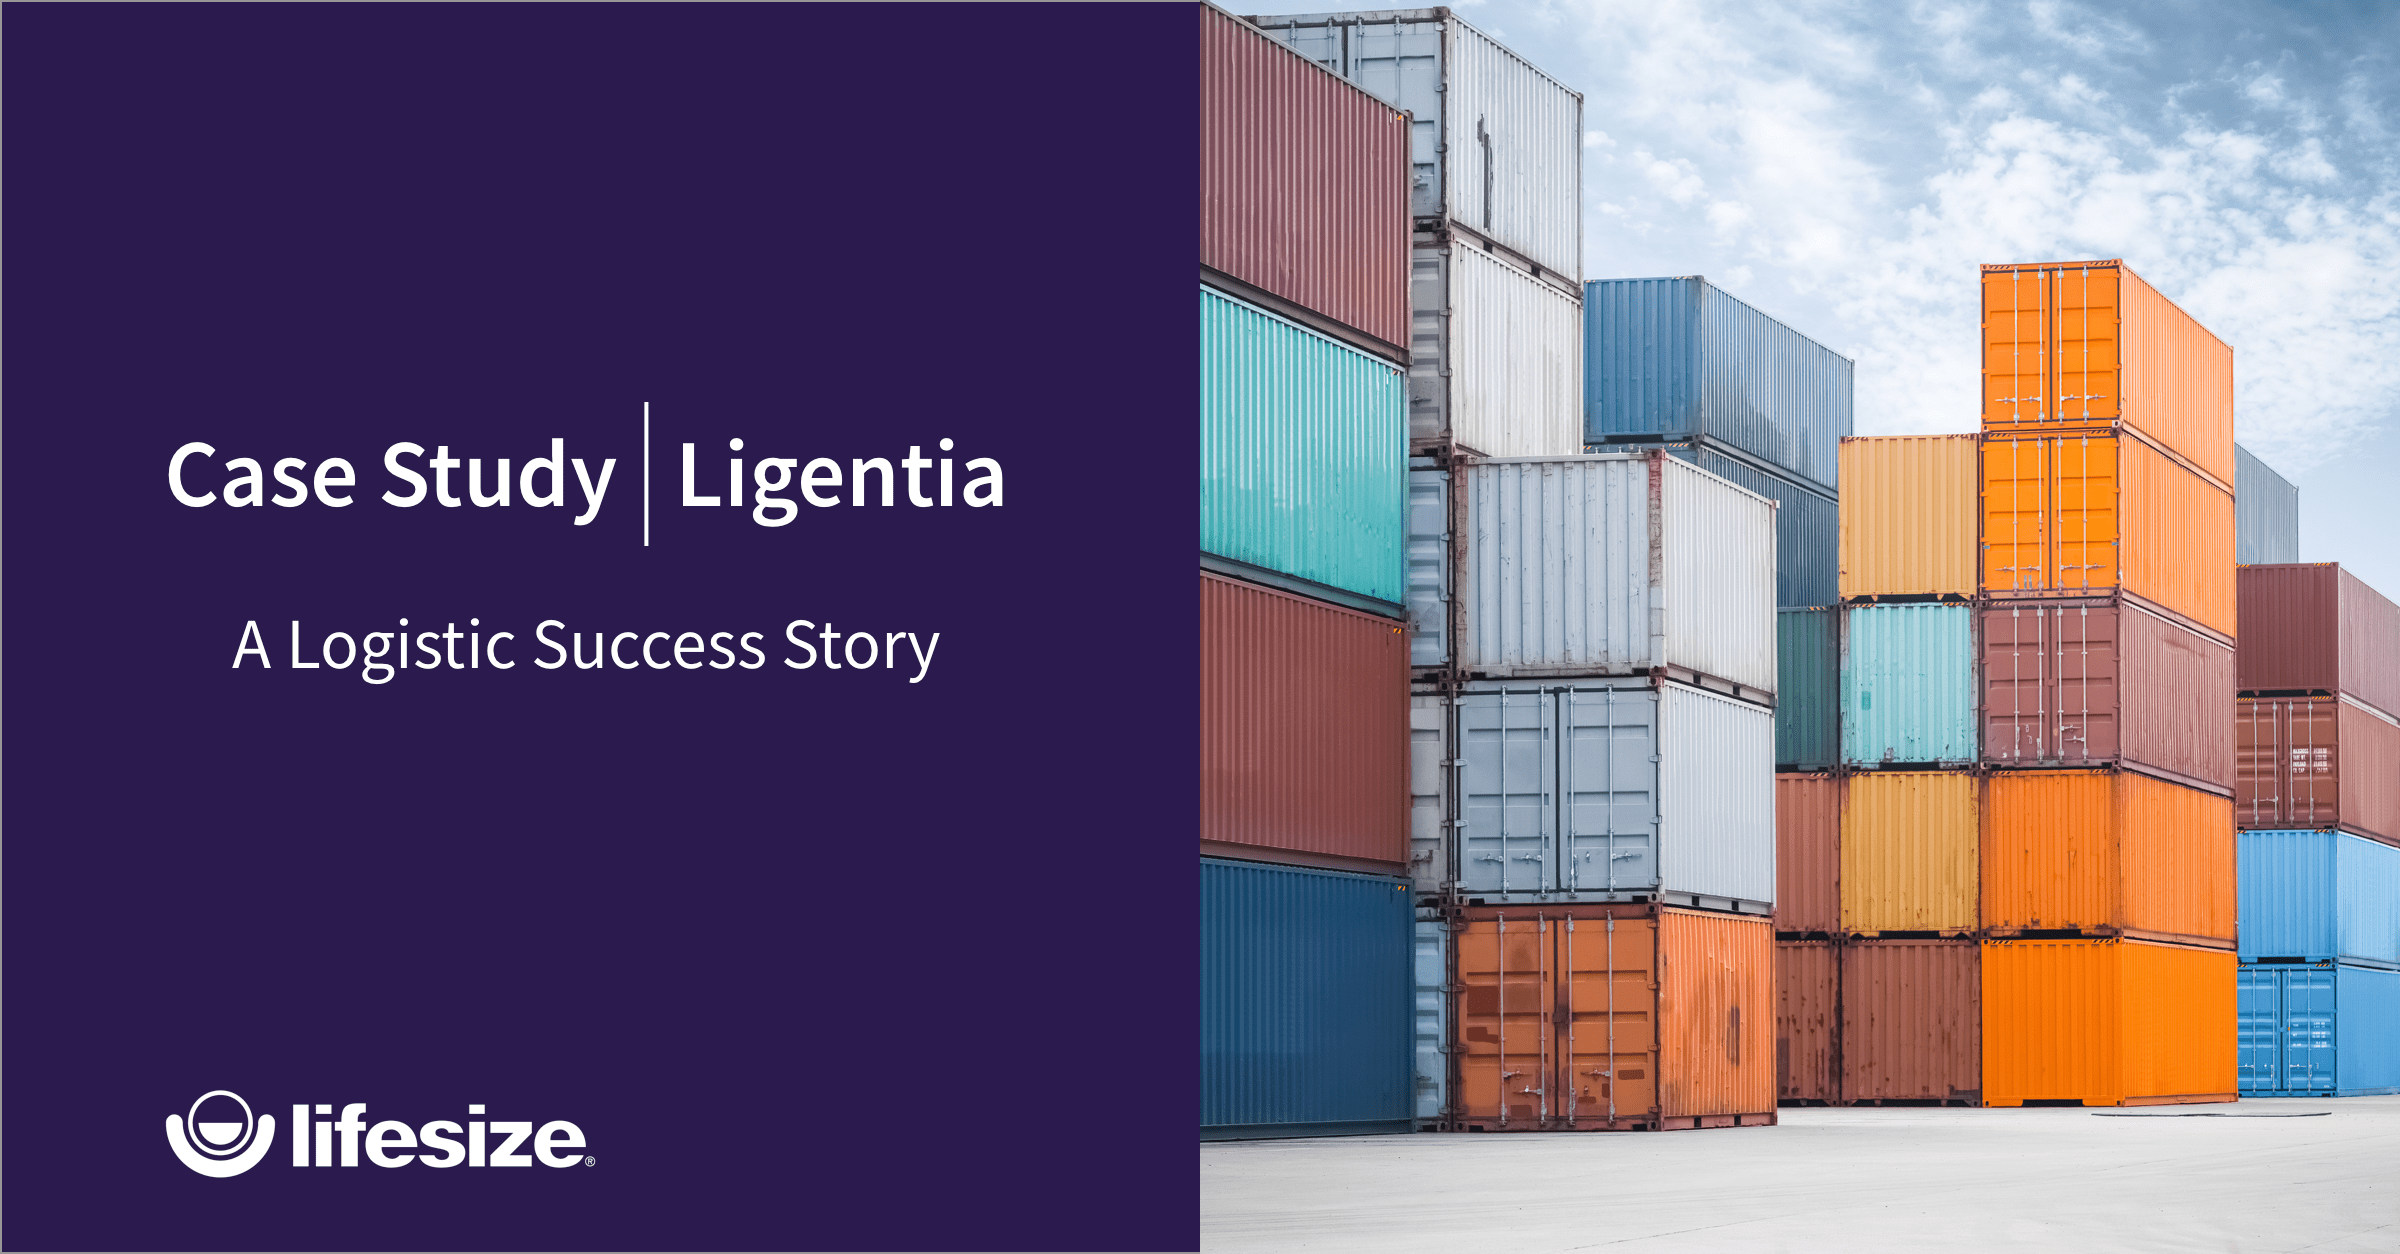 Learn how Ligentia implemented Lifesize to elevate their meetings via video technology.